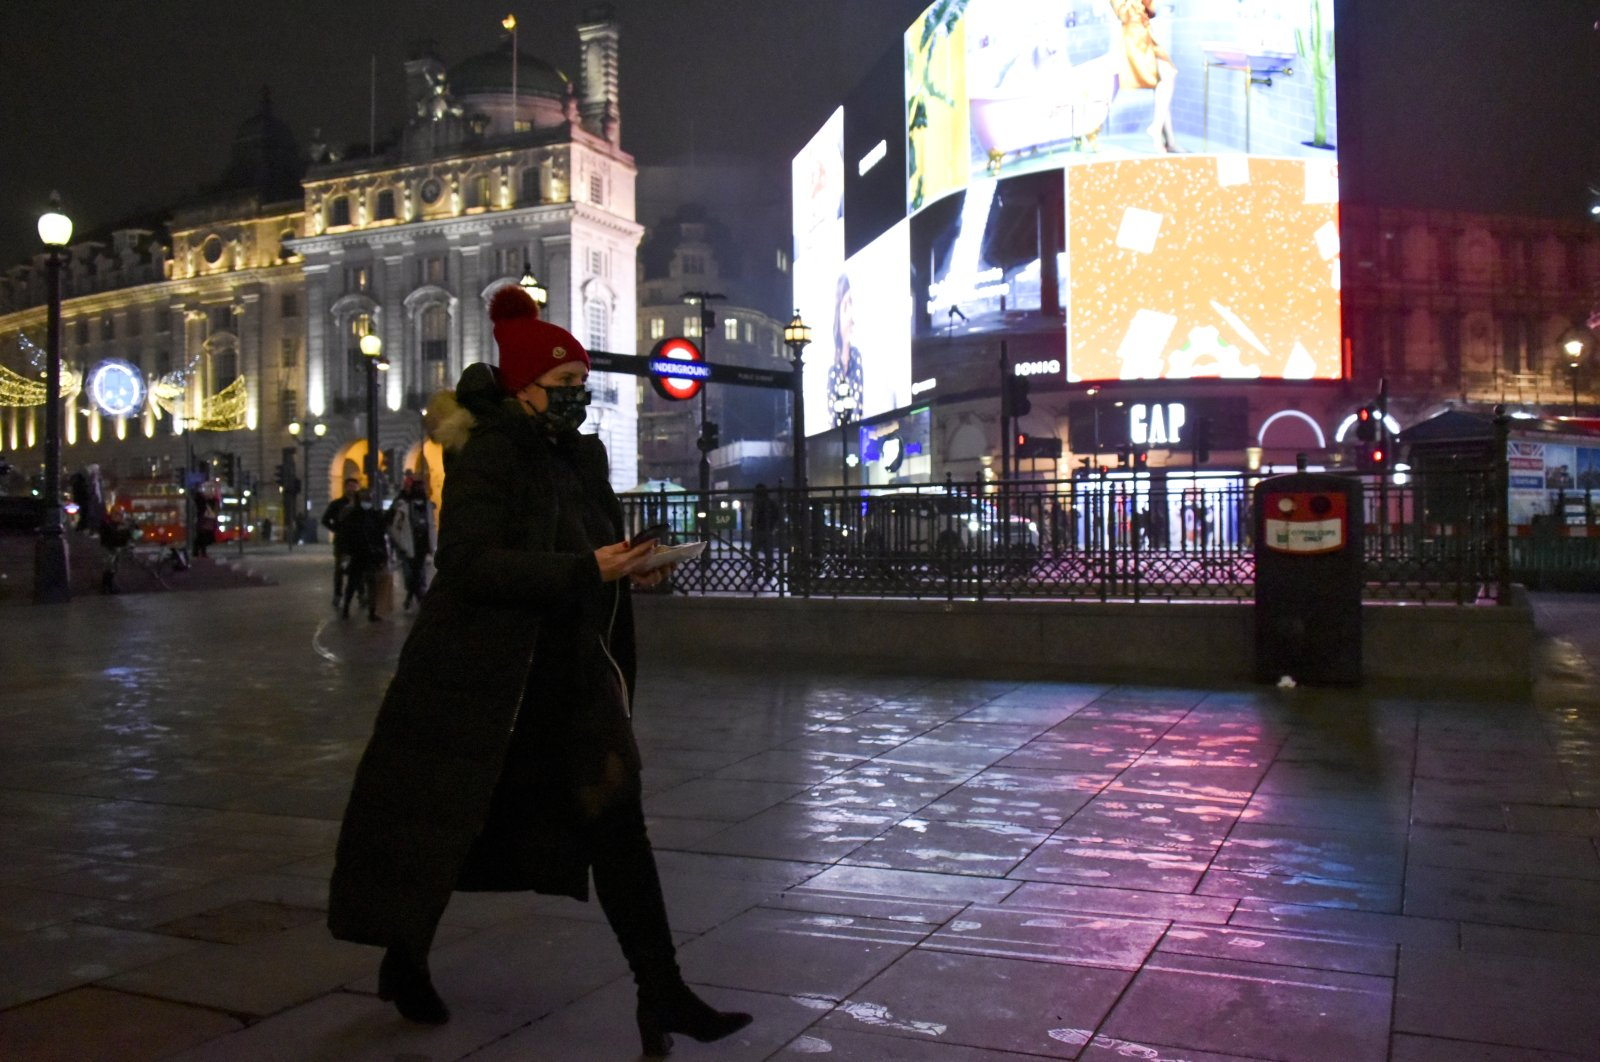 A woman wears a face-covering mask as she walks in the normally busy tourist and shopping area at Piccadilly Circus in London, Dec. 22, 2020. (AP Photo)